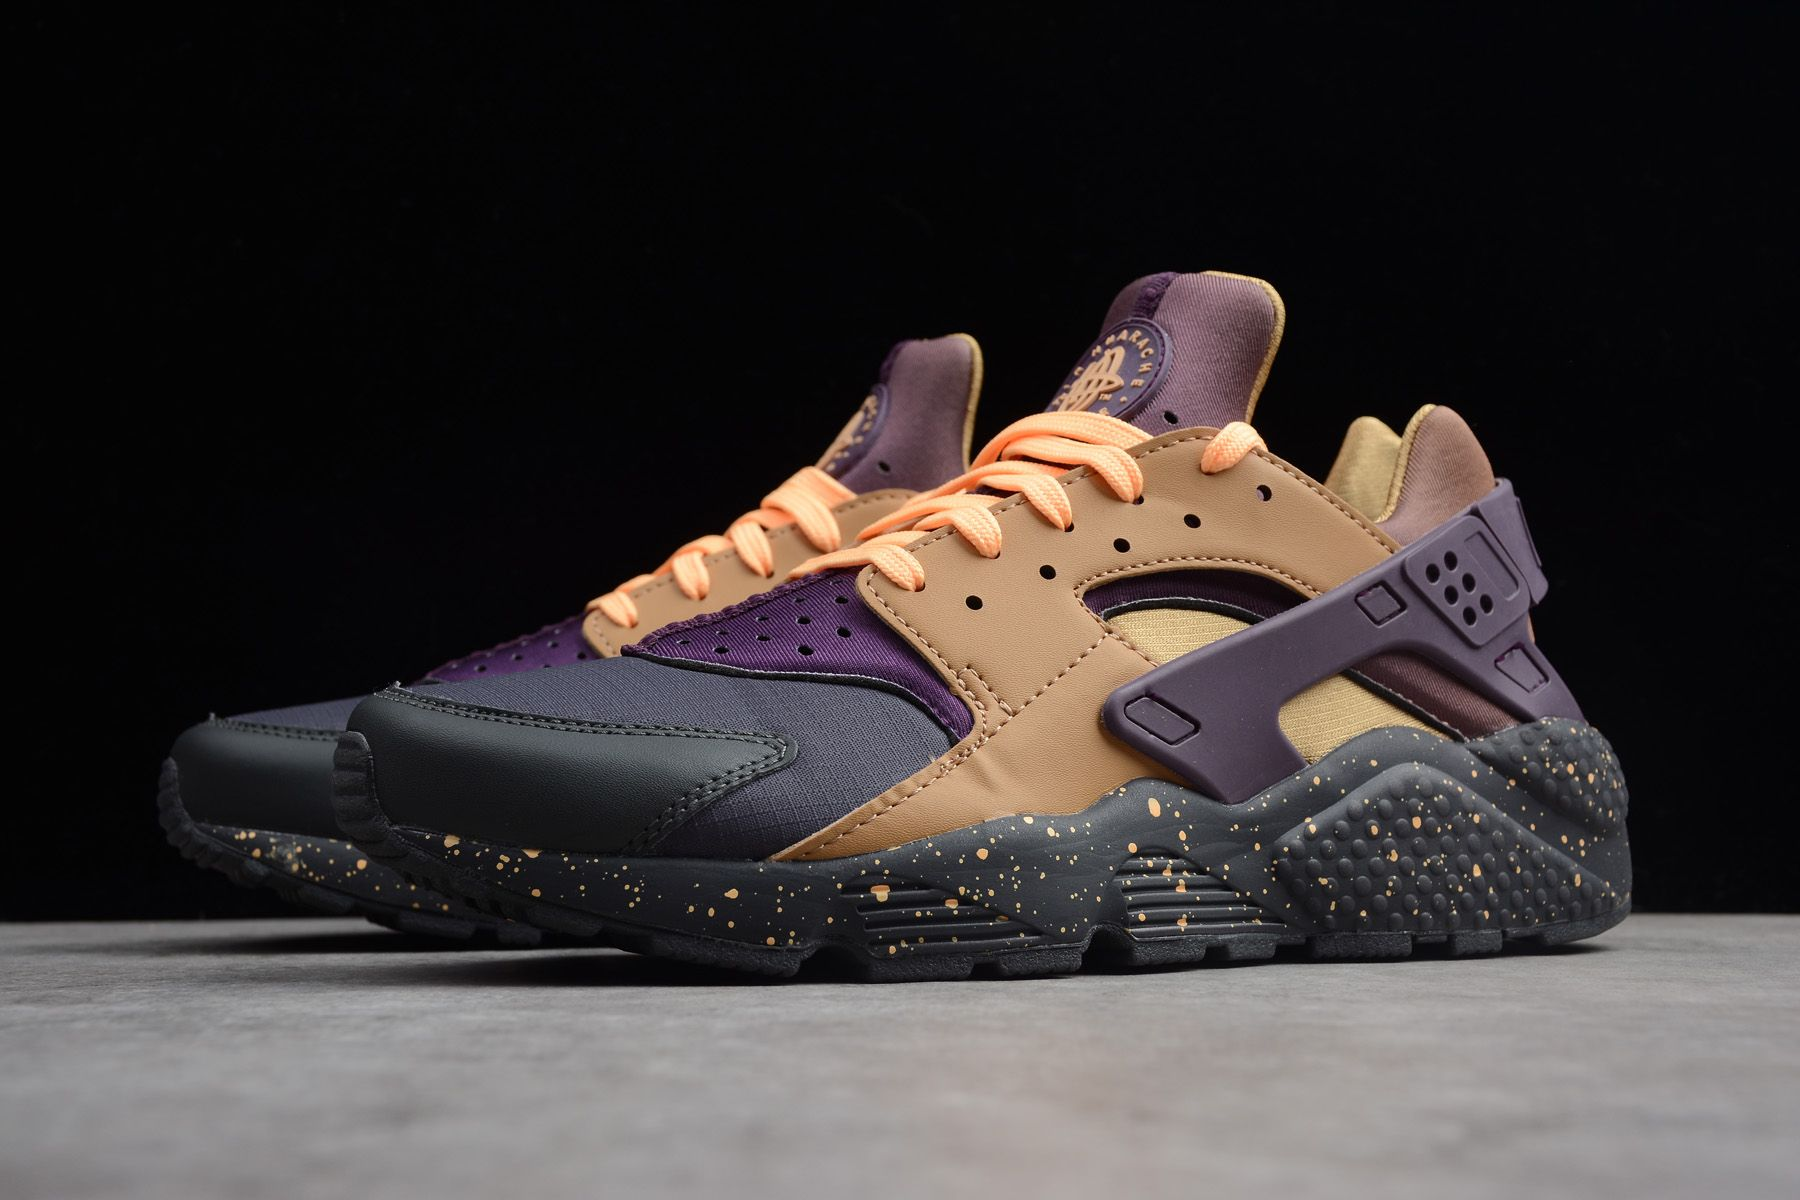 Nike Air Huarache Run Premium Anthracite Pro Purple Elemental Gold 704830 -012 52ecec926